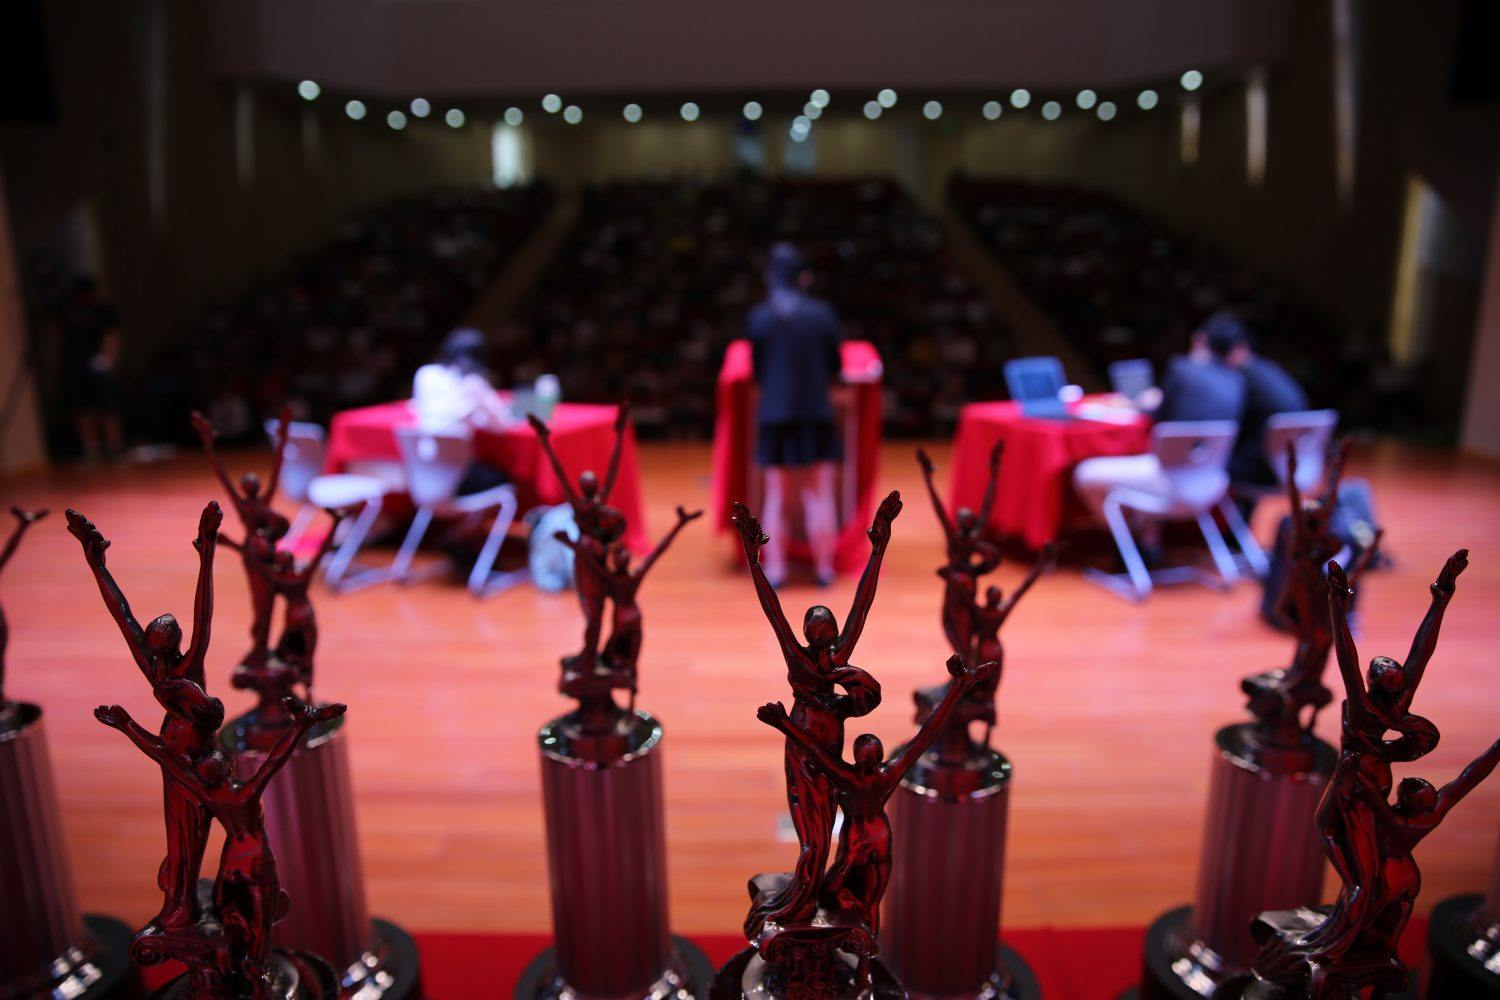 Prize statuettes at a debate championship